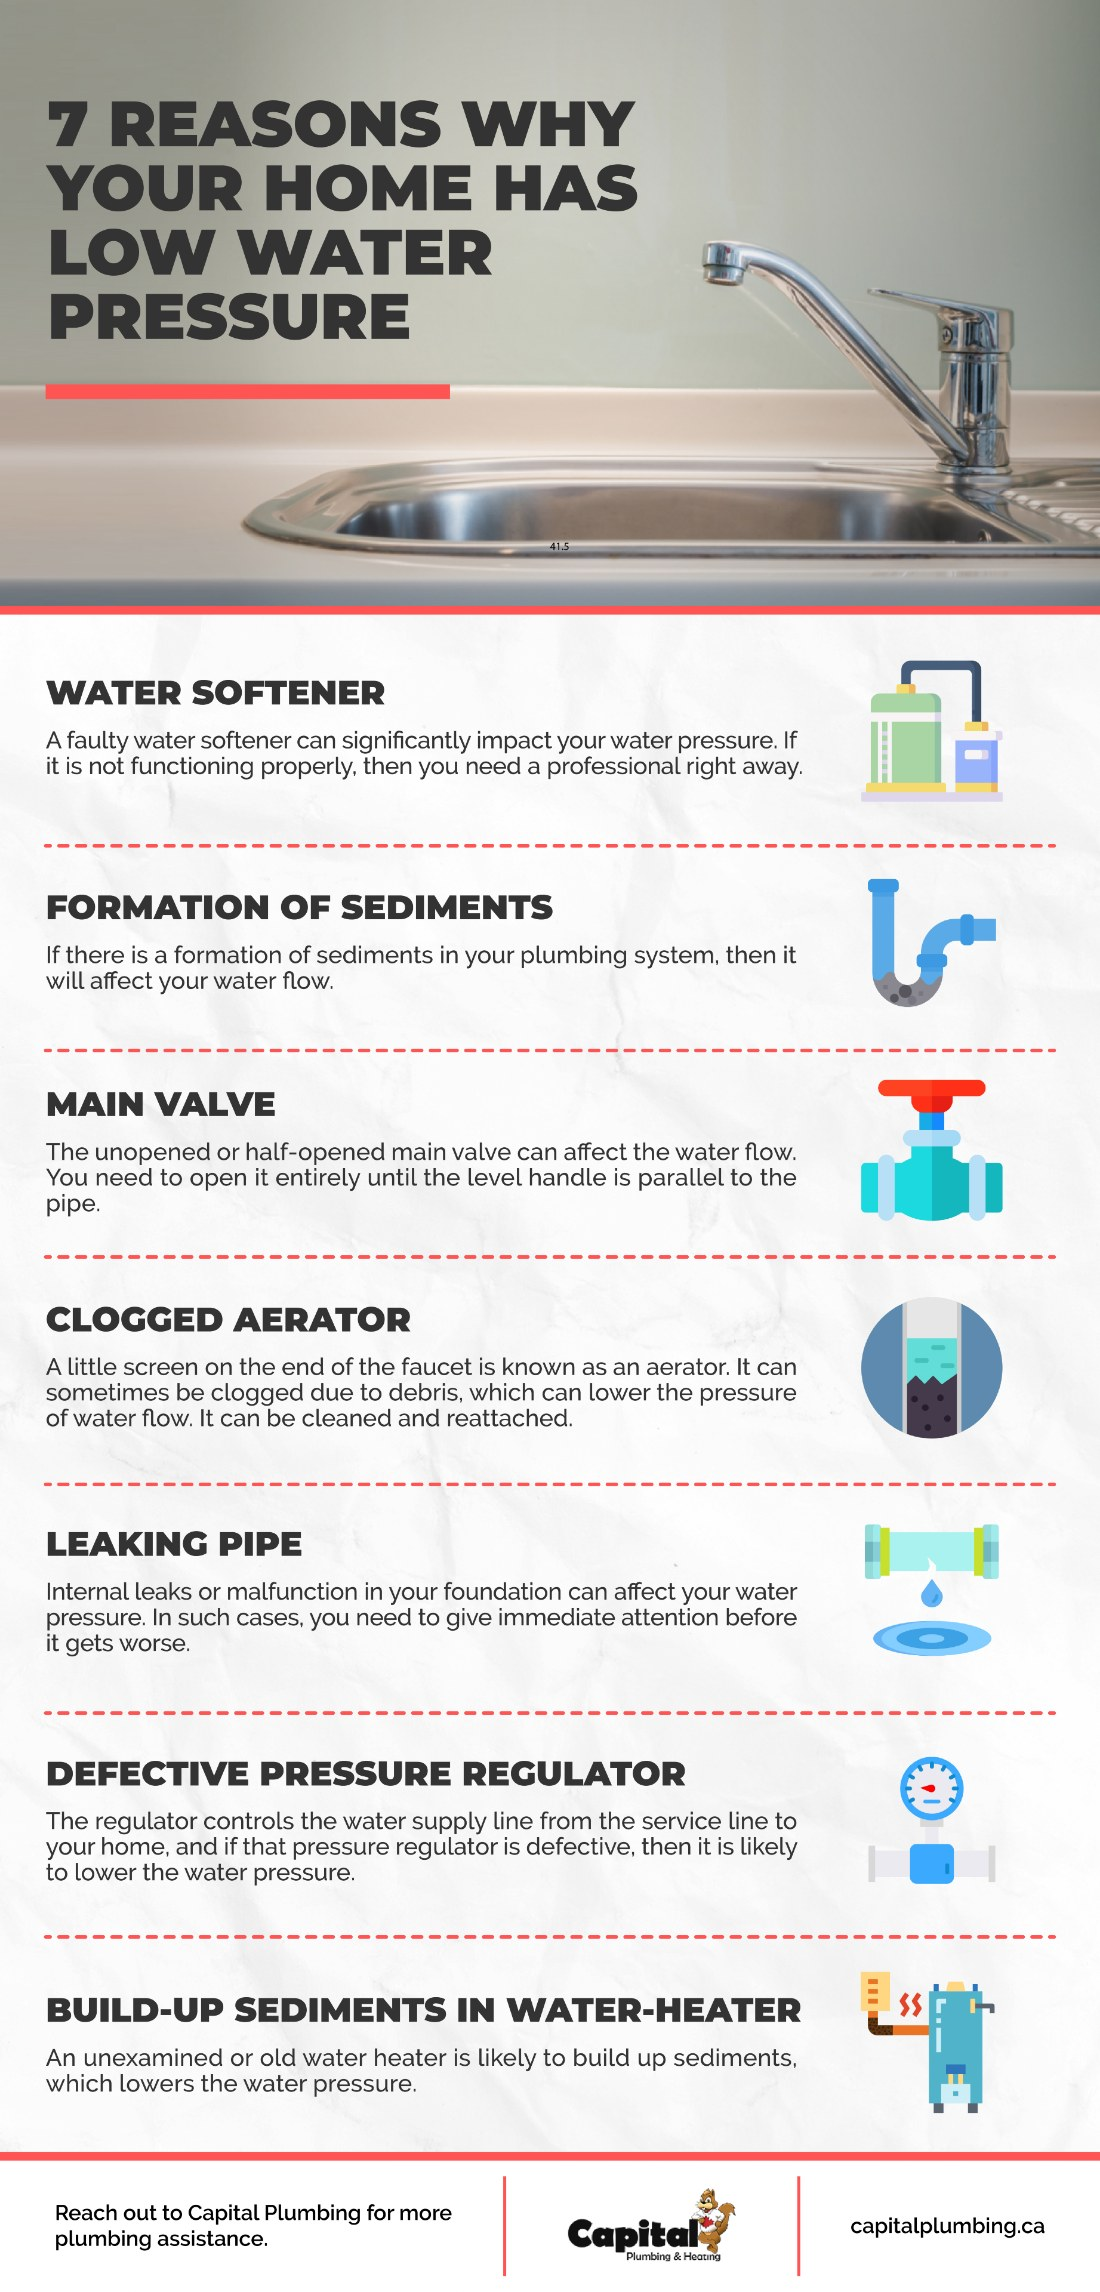 Reasons Why Your Home Has Low Water Pressure